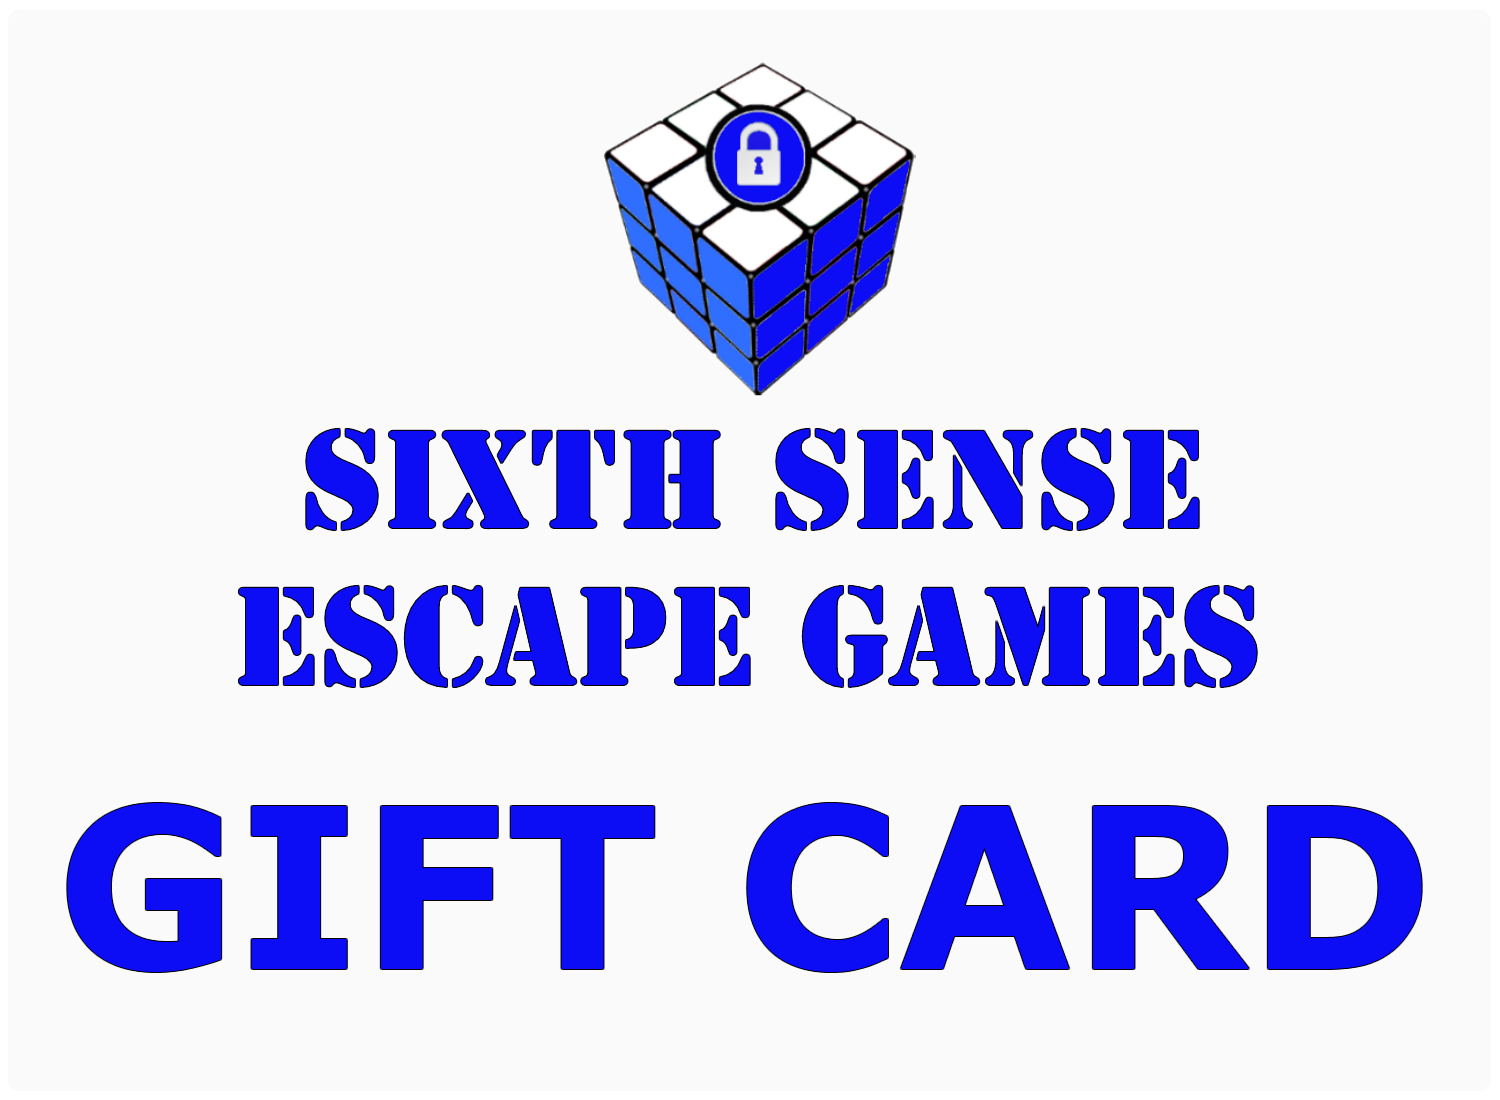 Gift cardd.png